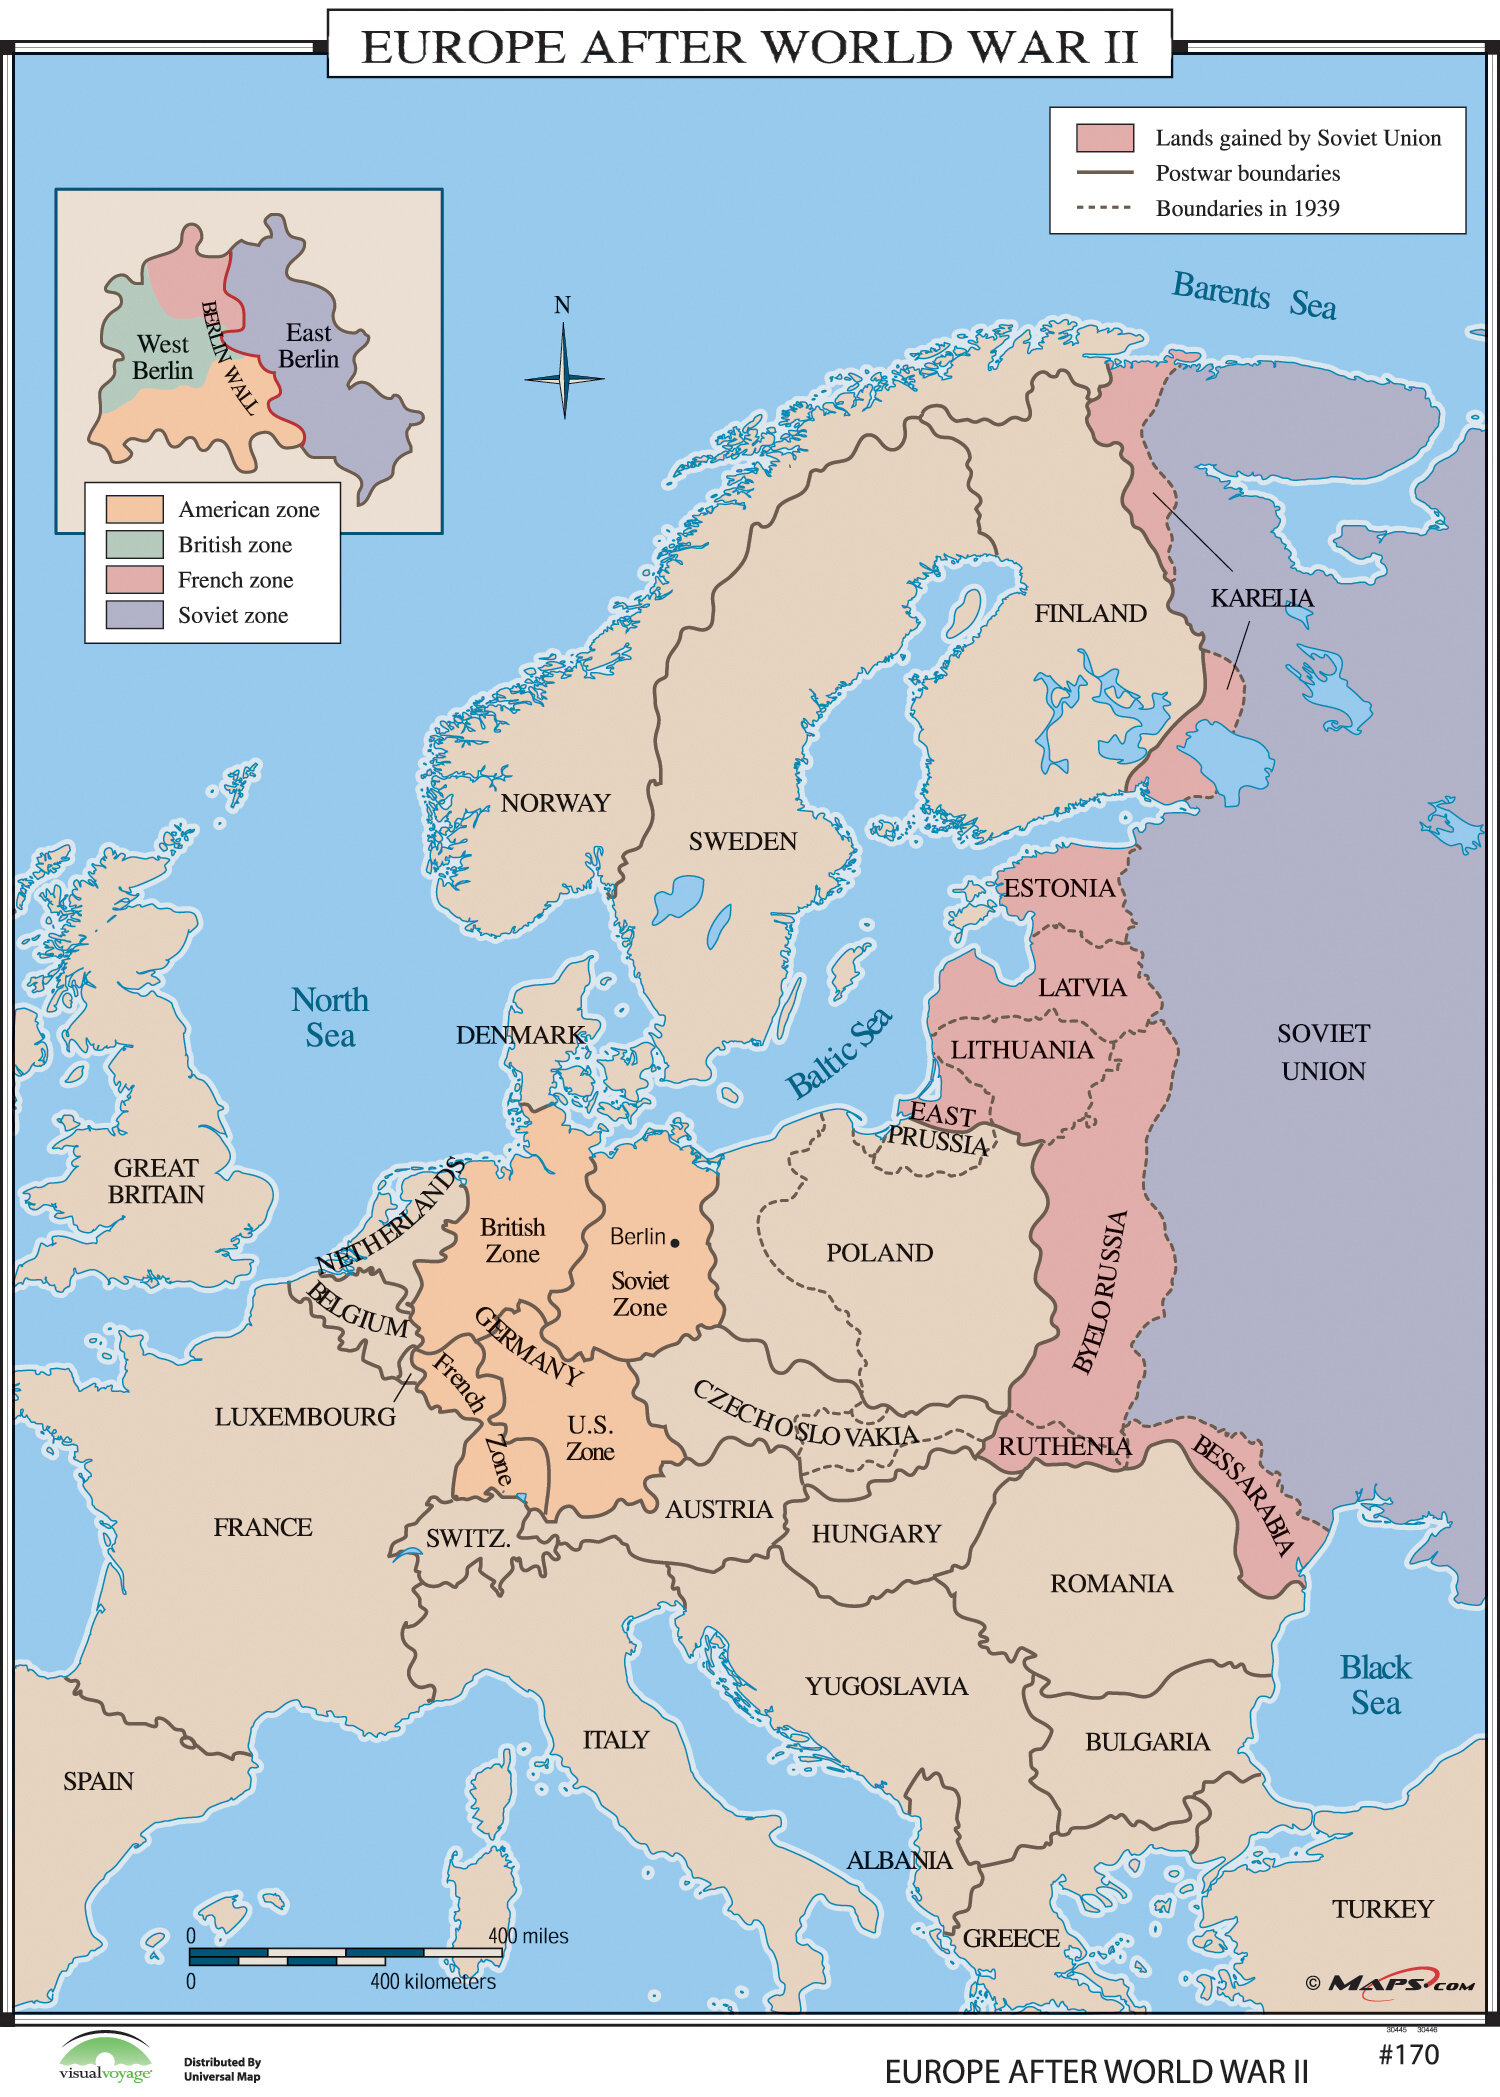 World History Wall Maps - Europe after World War II